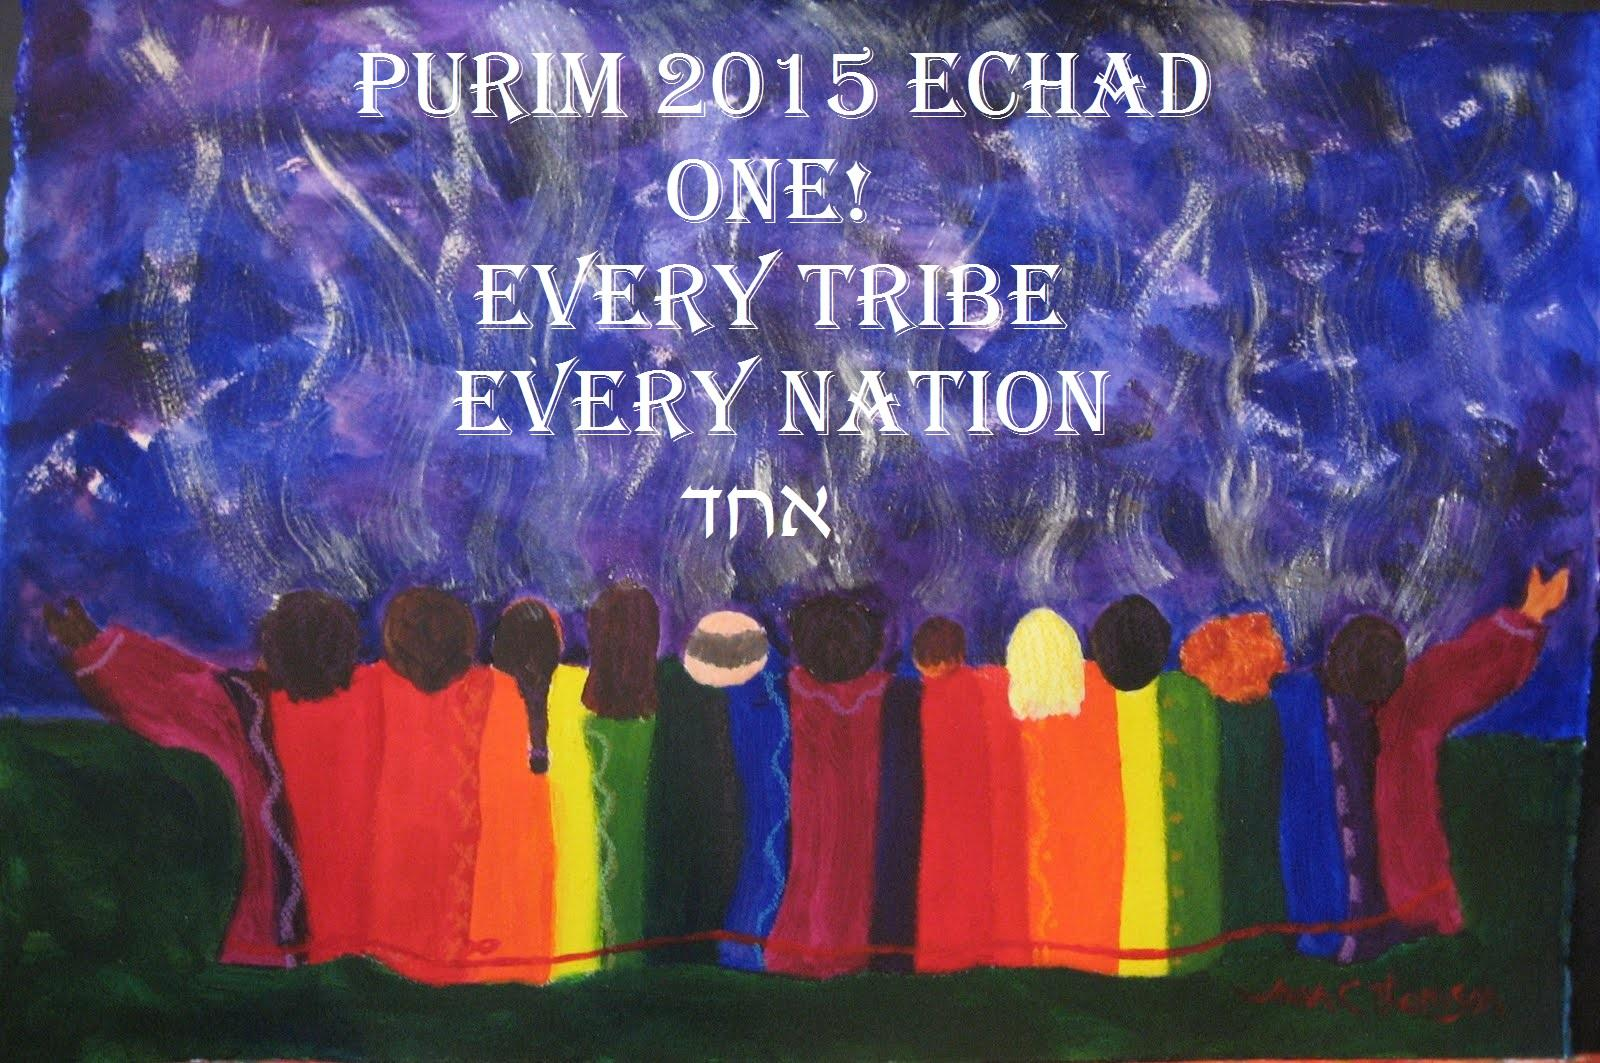 Hurricane (WV) United States  city photos : Purim 2015 Echad Tickets in Hurricane, WV, United States